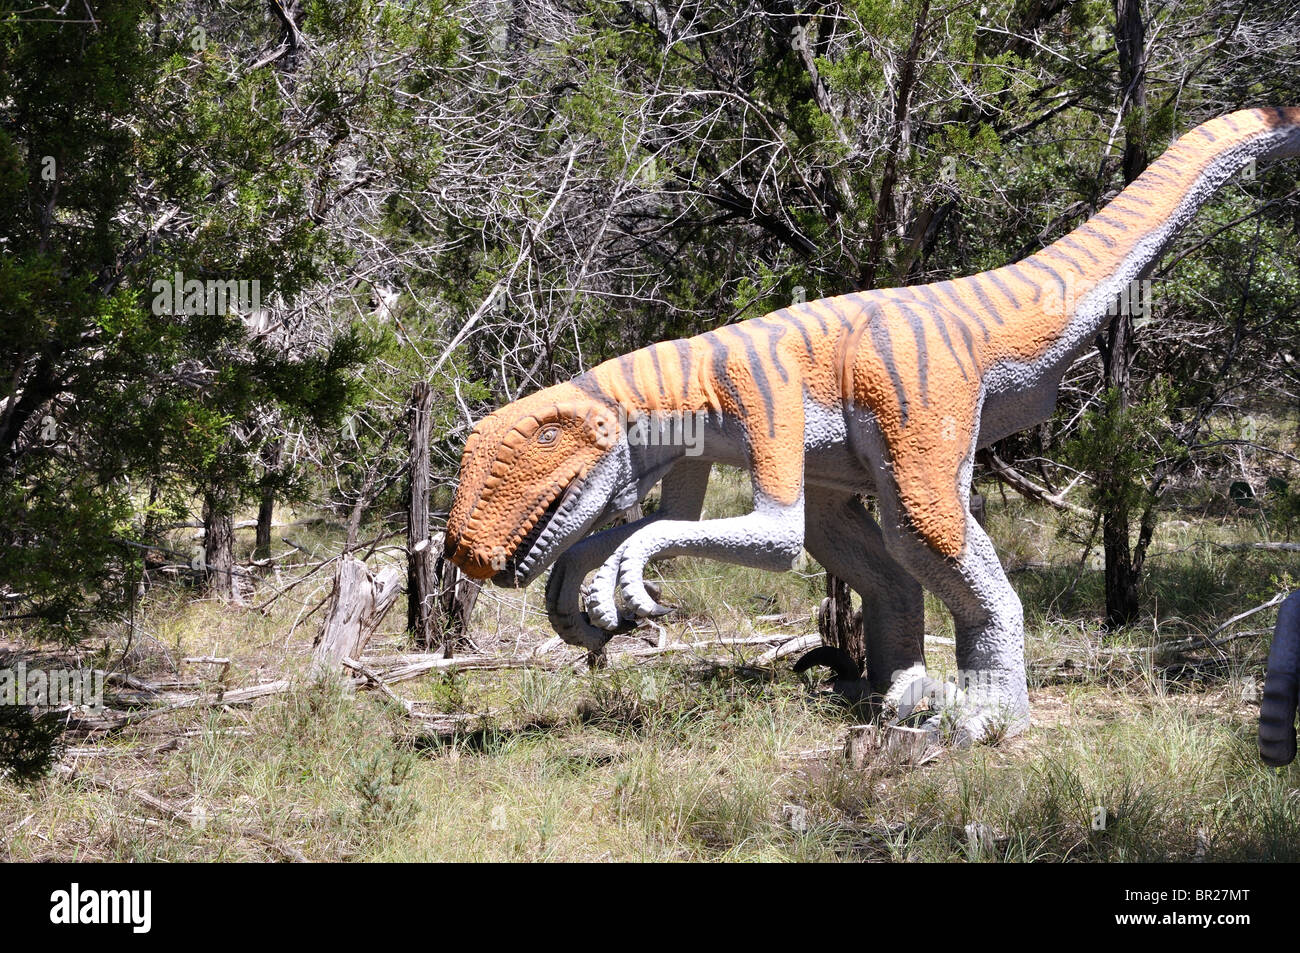 Deinonychus, Dinosaur World, Glen Rose, Texas, USA - Stock Image